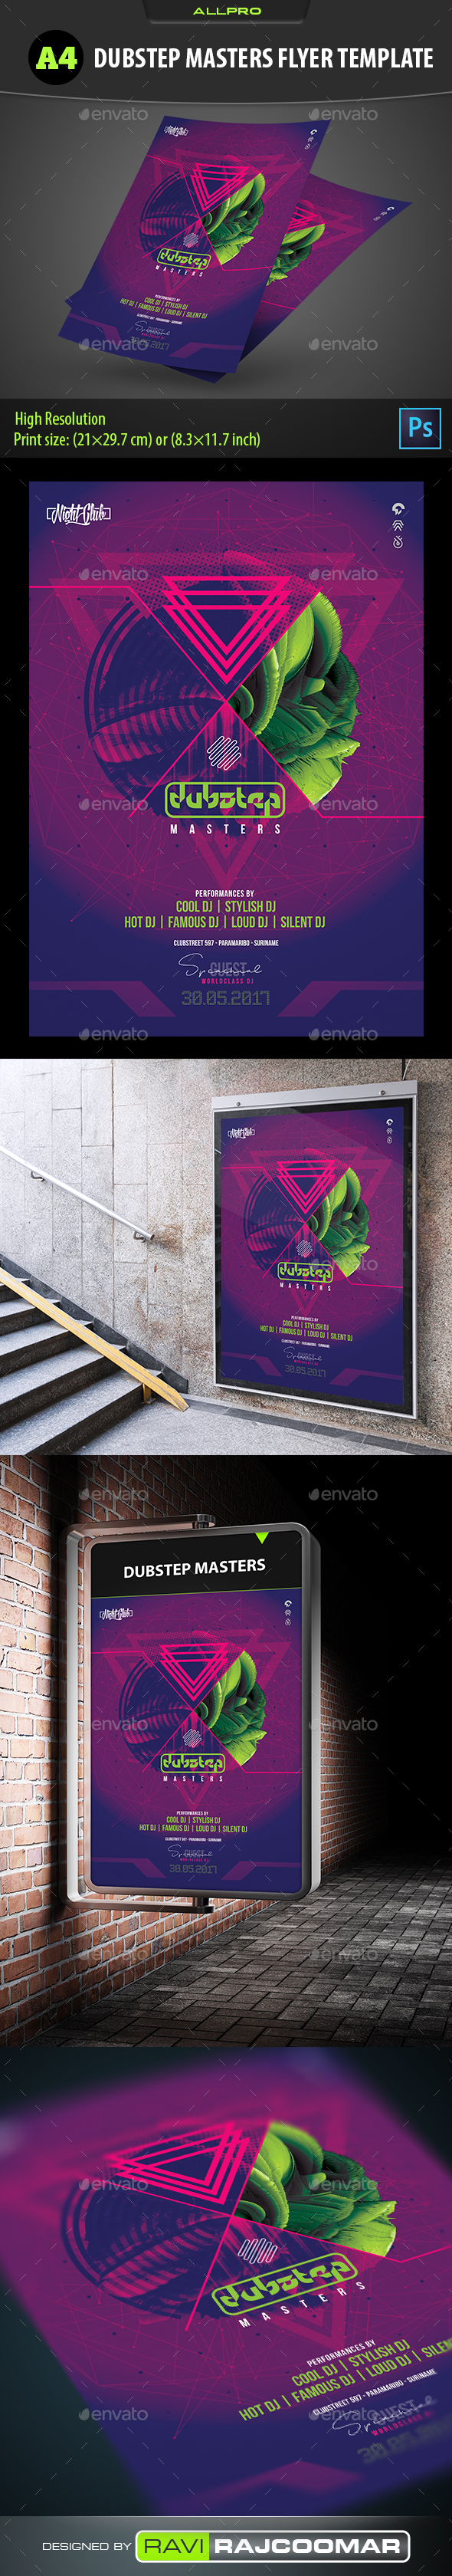 Dubstep Masters Flyer Template - Flyers Print Templates